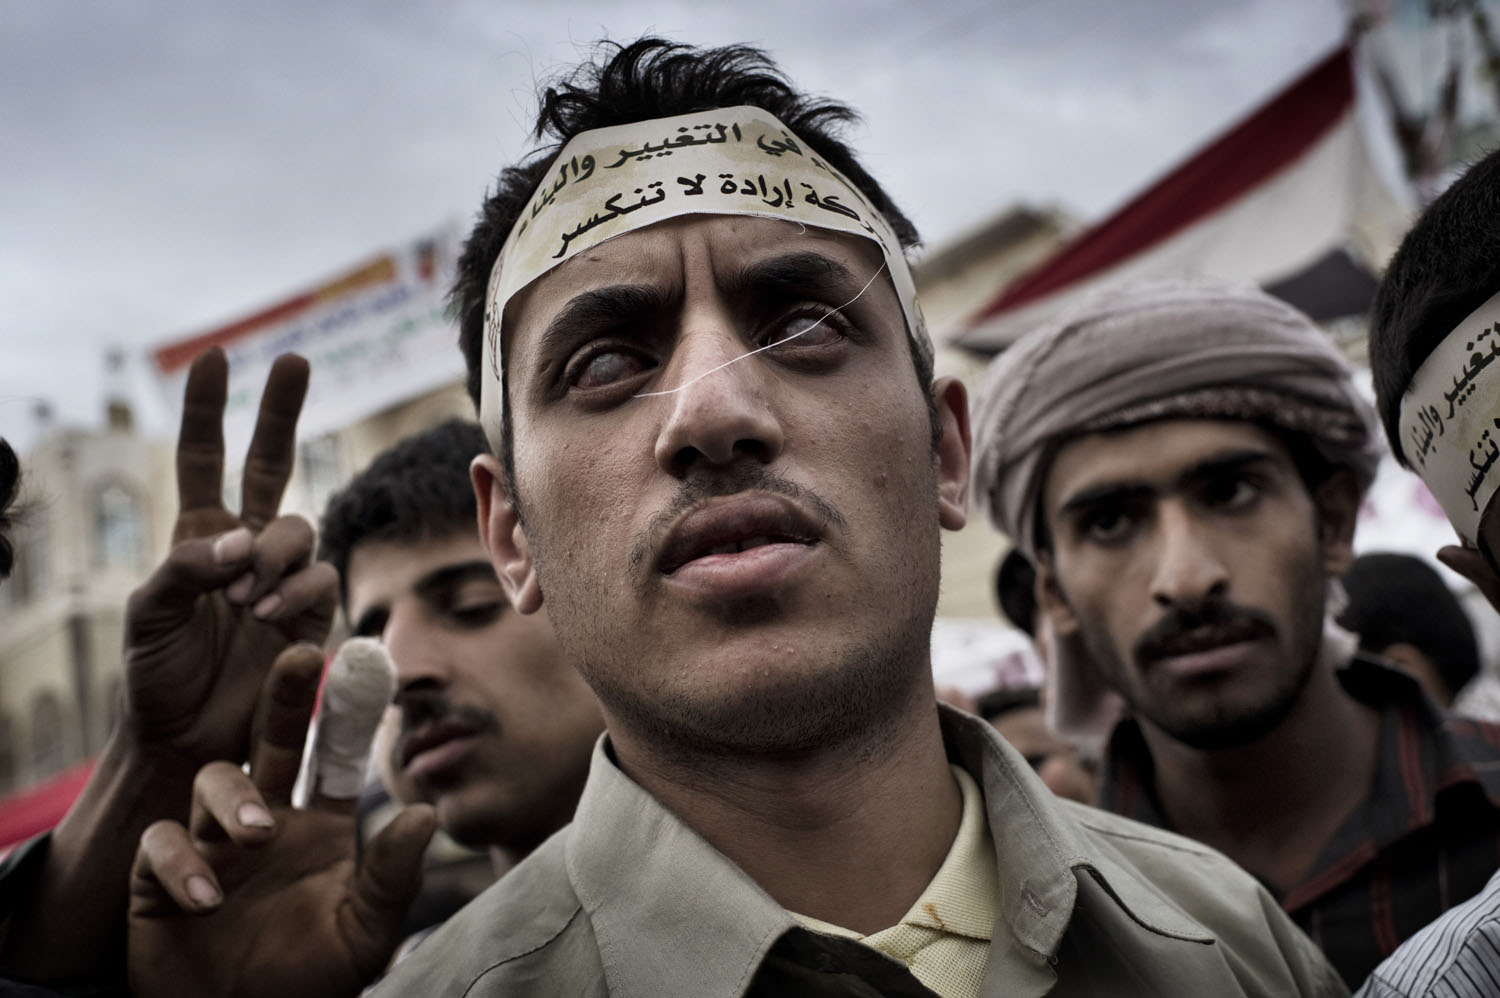 A blind protester attends a demonstration at Change Square in Sana'a, May 16, 2011.